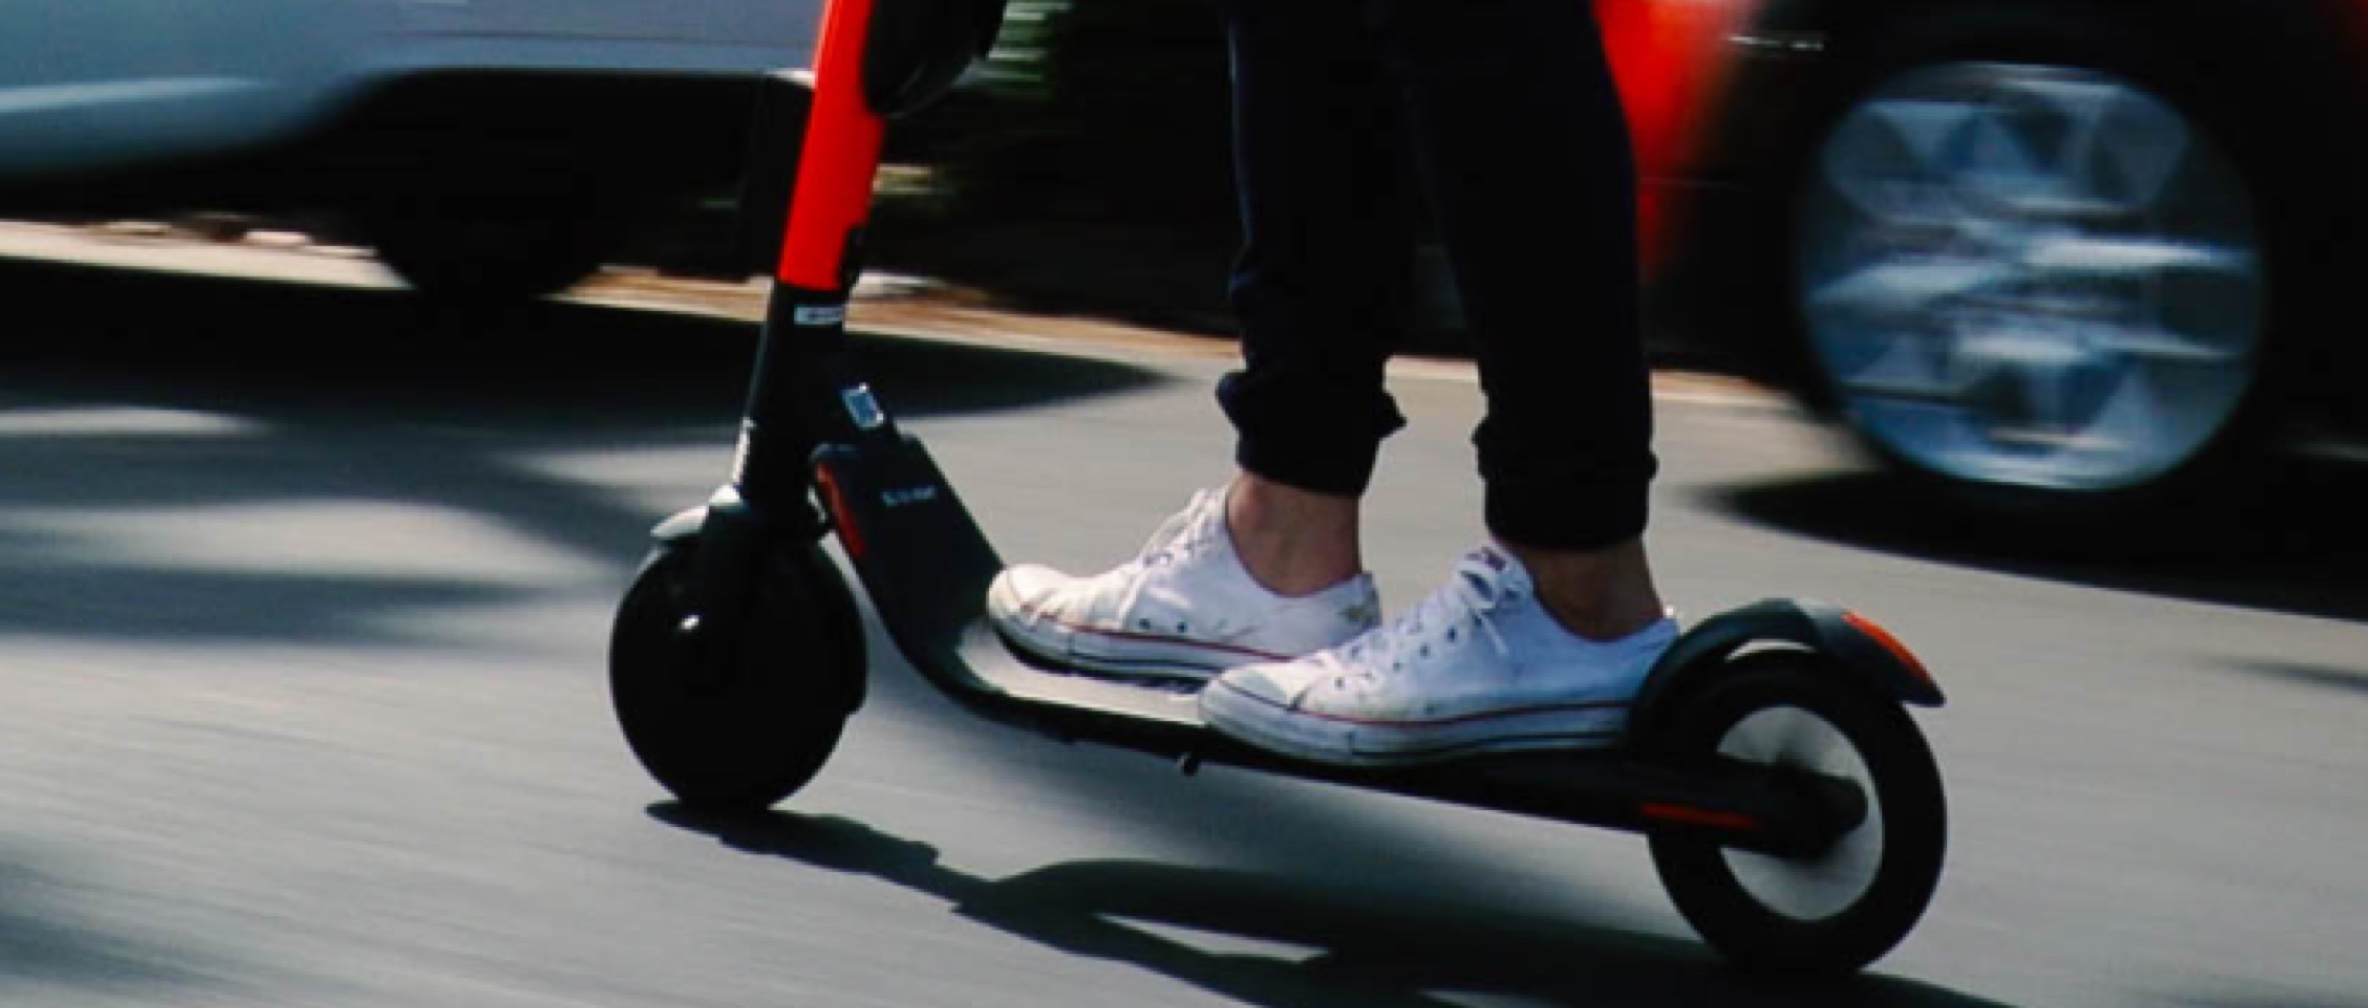 JUMP - electric scooters | Uber